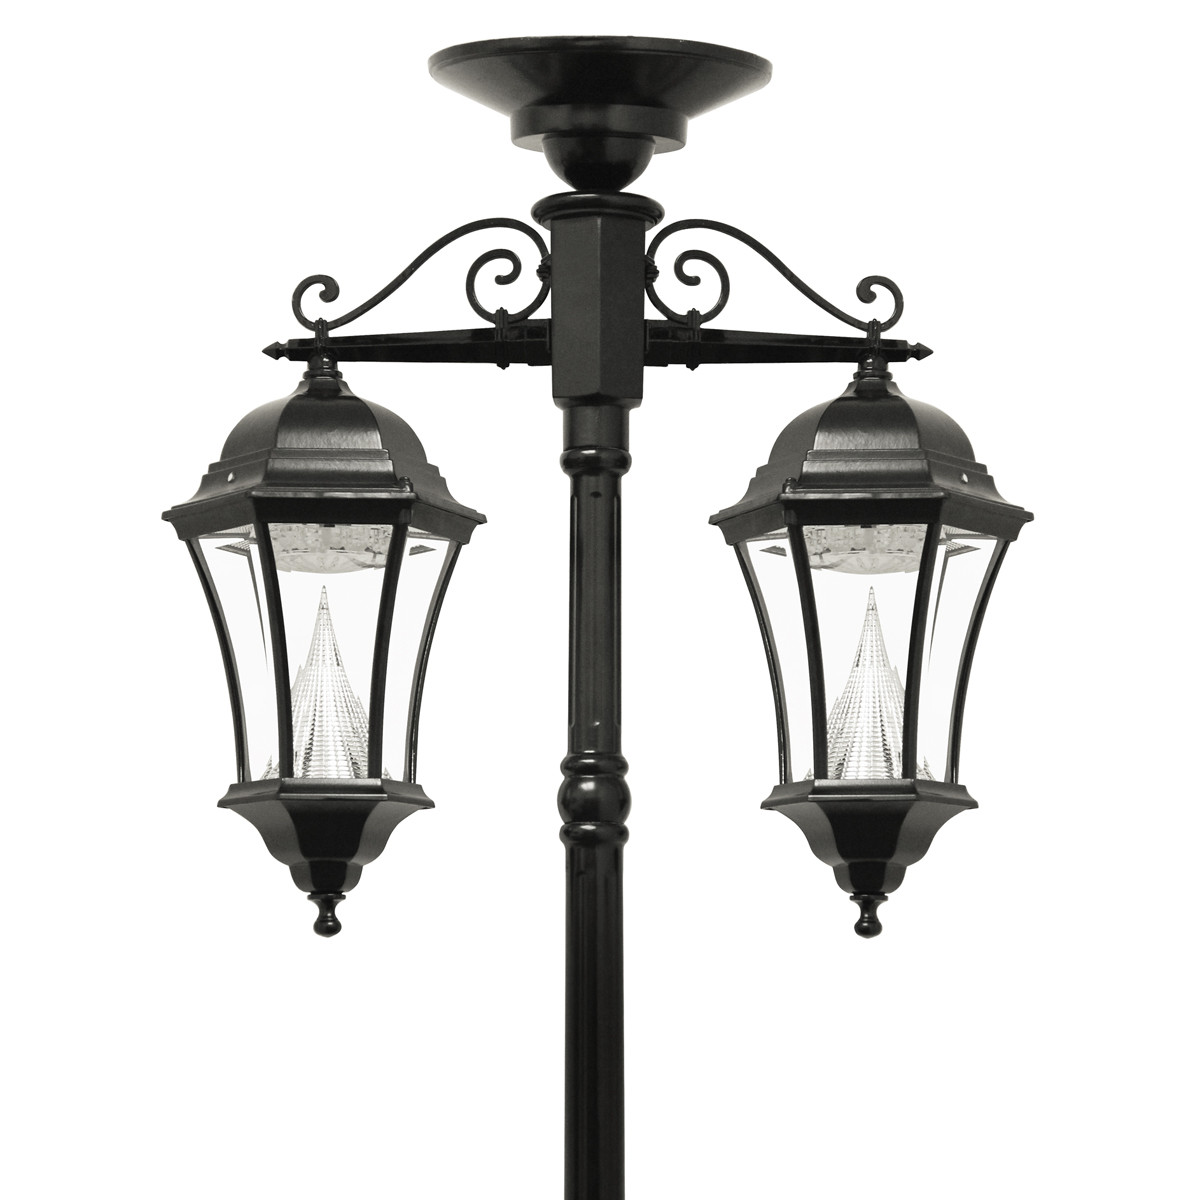 Best ideas about Lamp Post Lights . Save or Pin Victorian Solar Lamp Series – Double Downward Hanging Lamp Now.